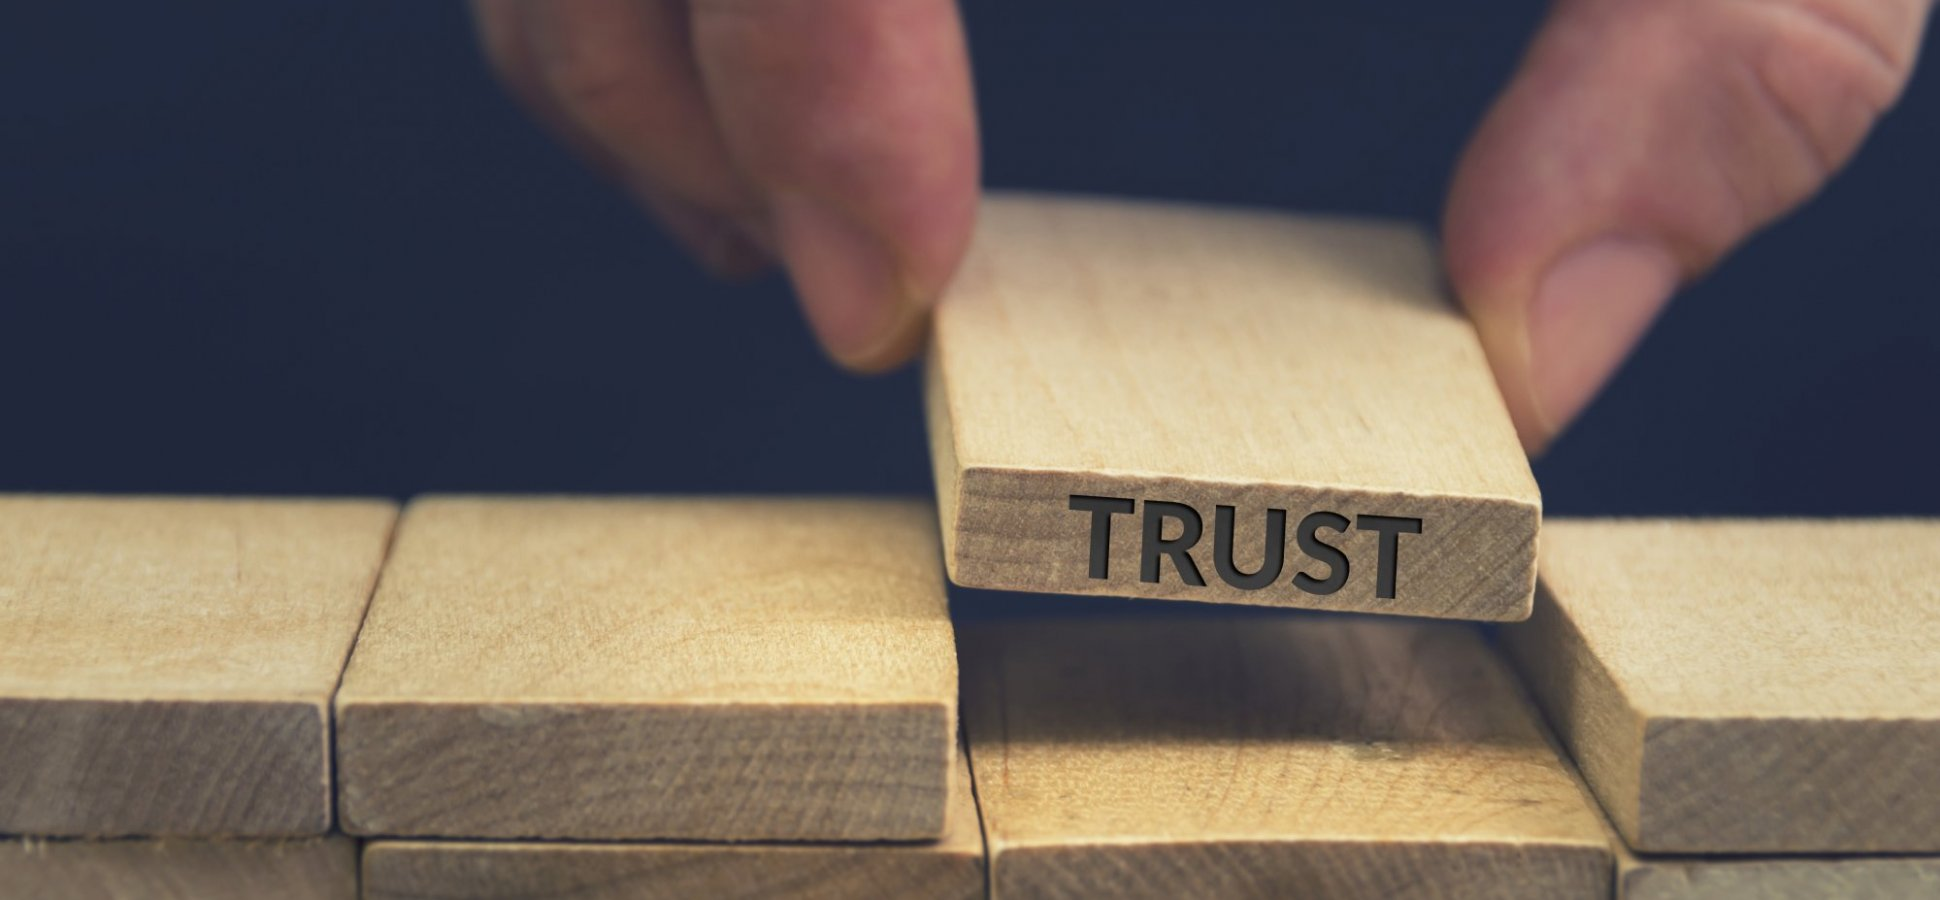 If You Want to Innovate Consistently, You Need to Build an Ecosystem of Trust